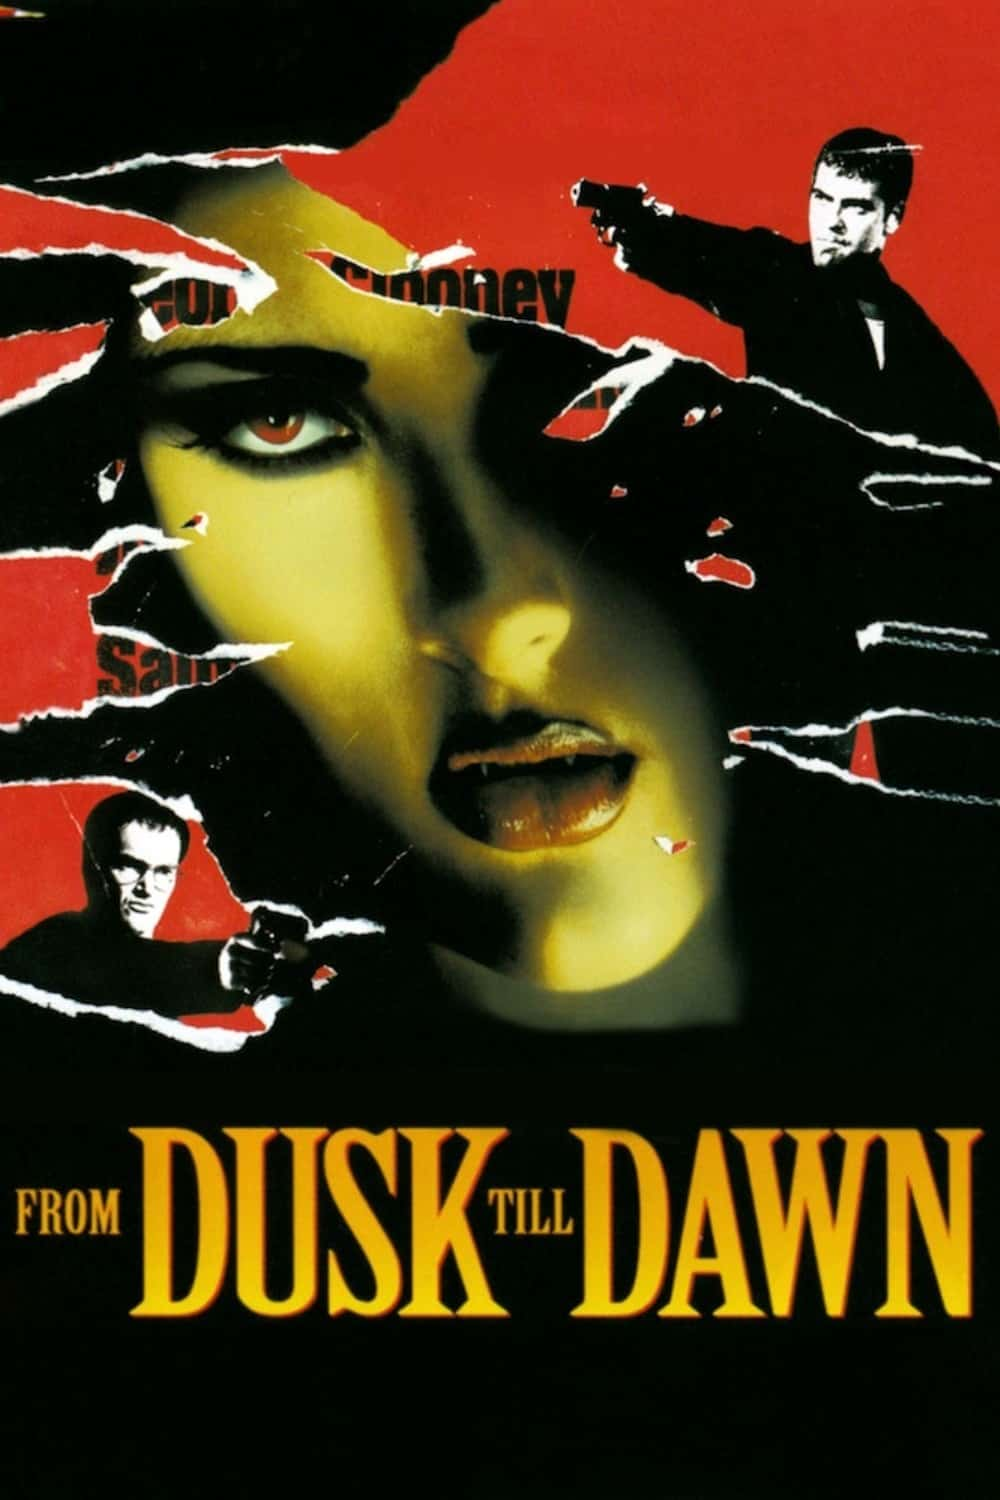 From Dusk till Dawn, 1996